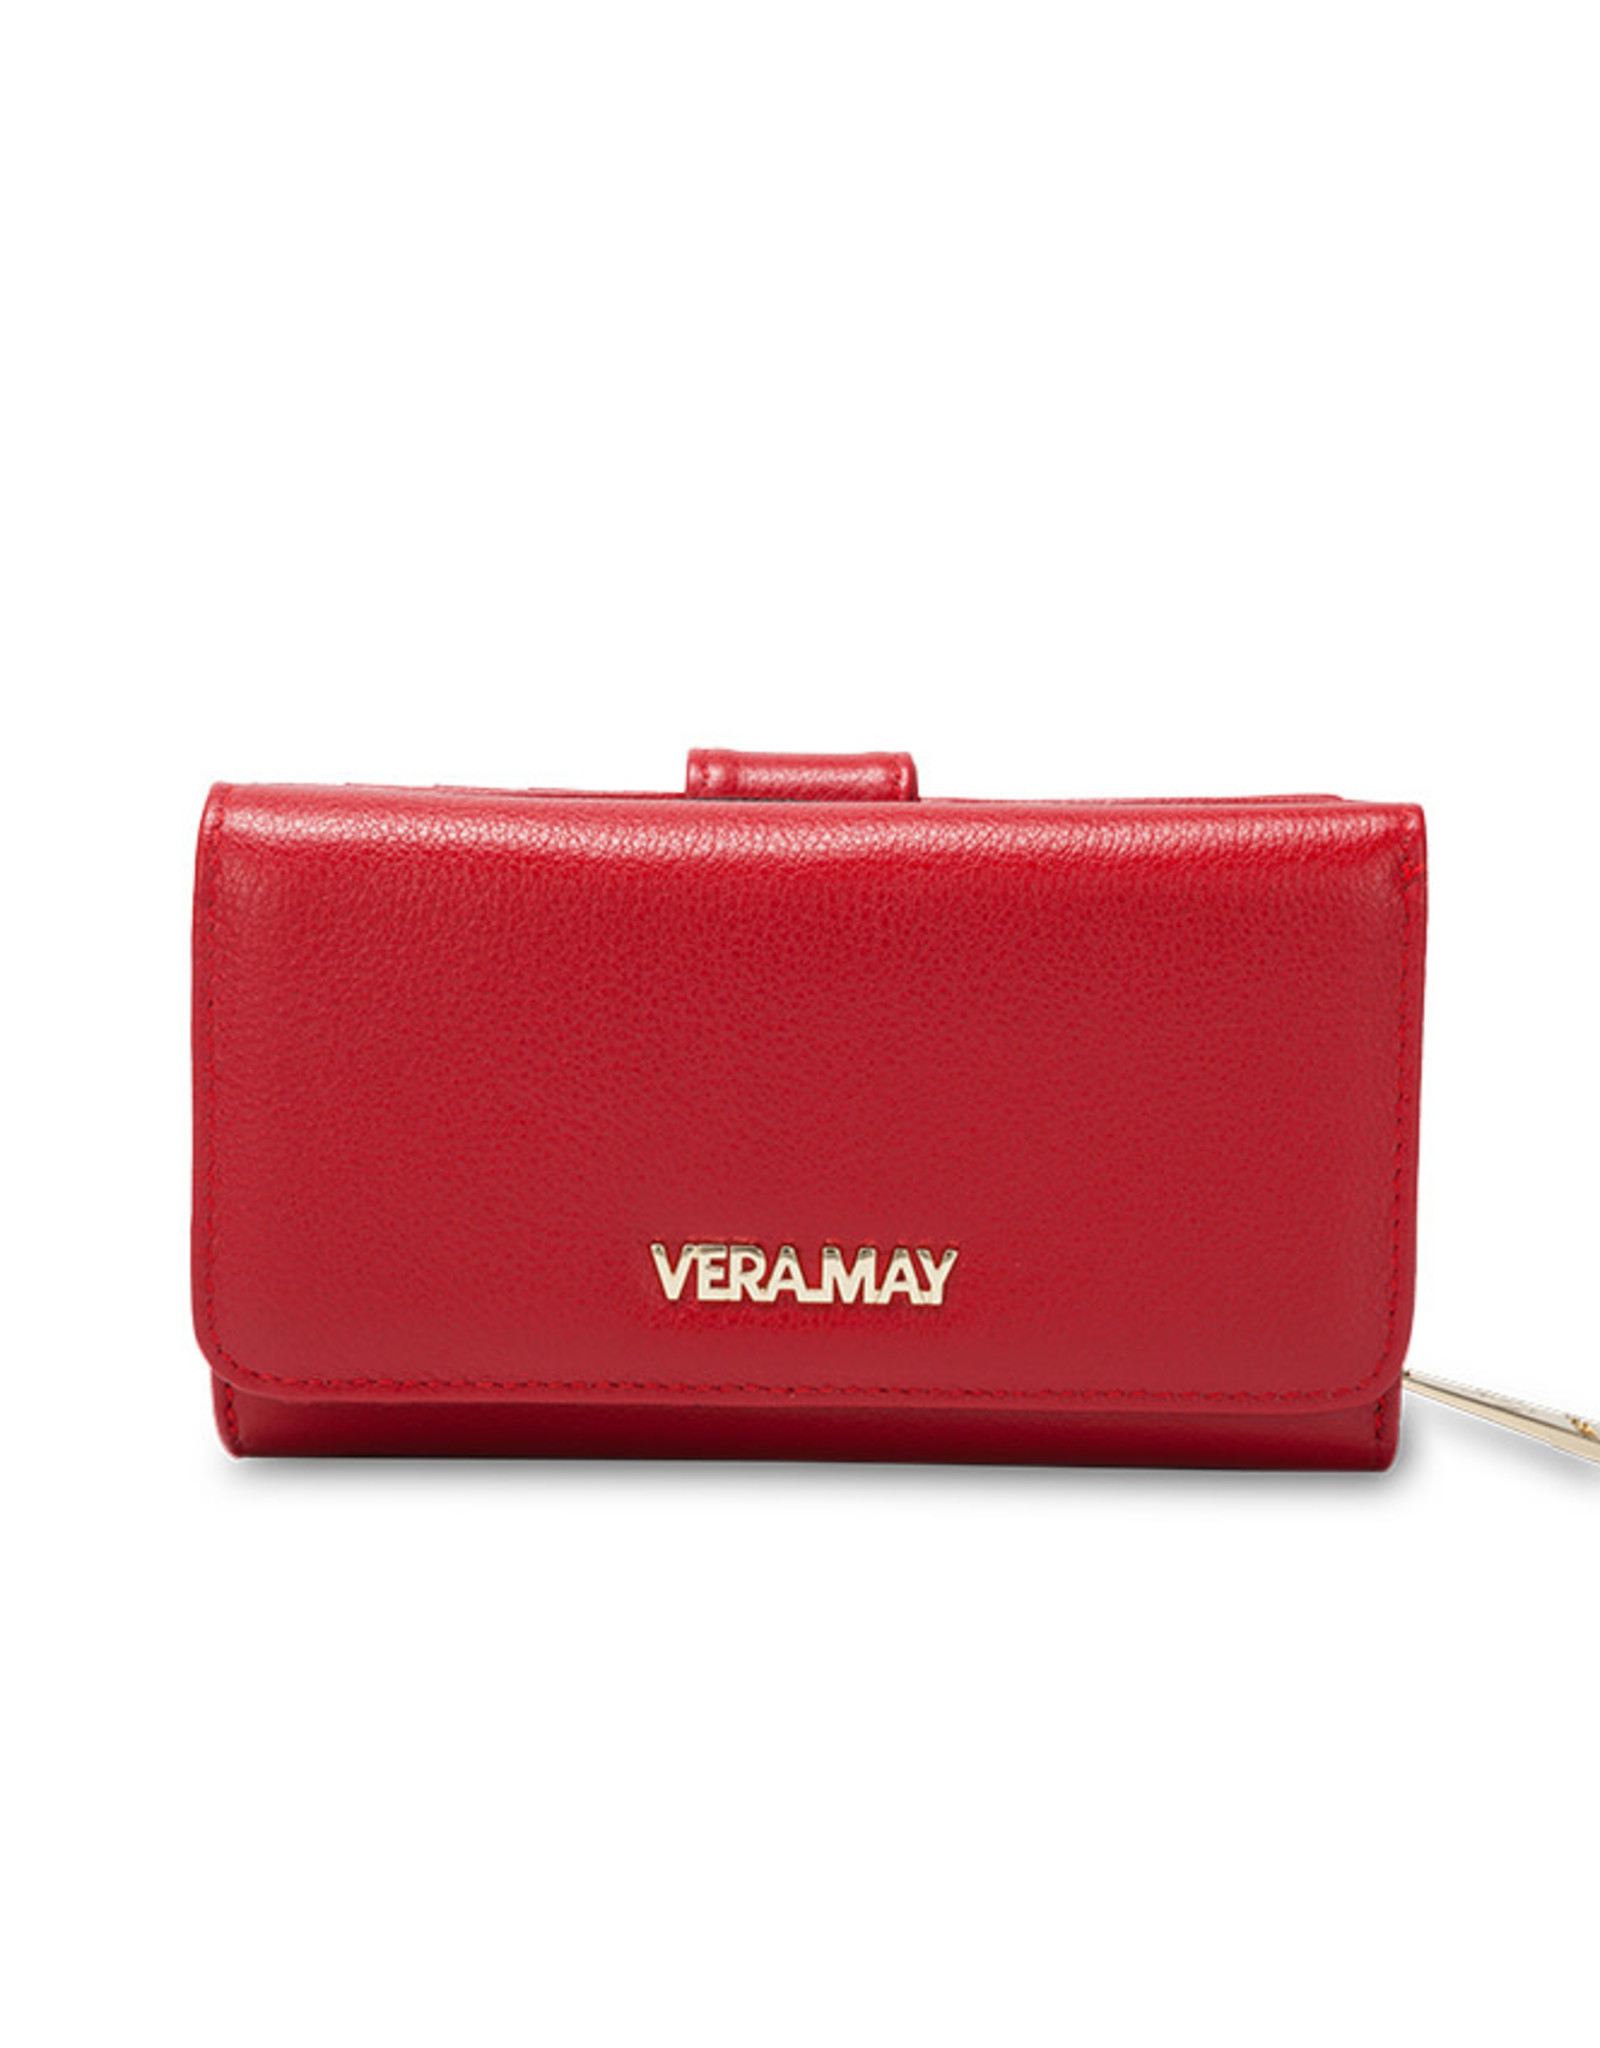 Vera May LW5MS Red